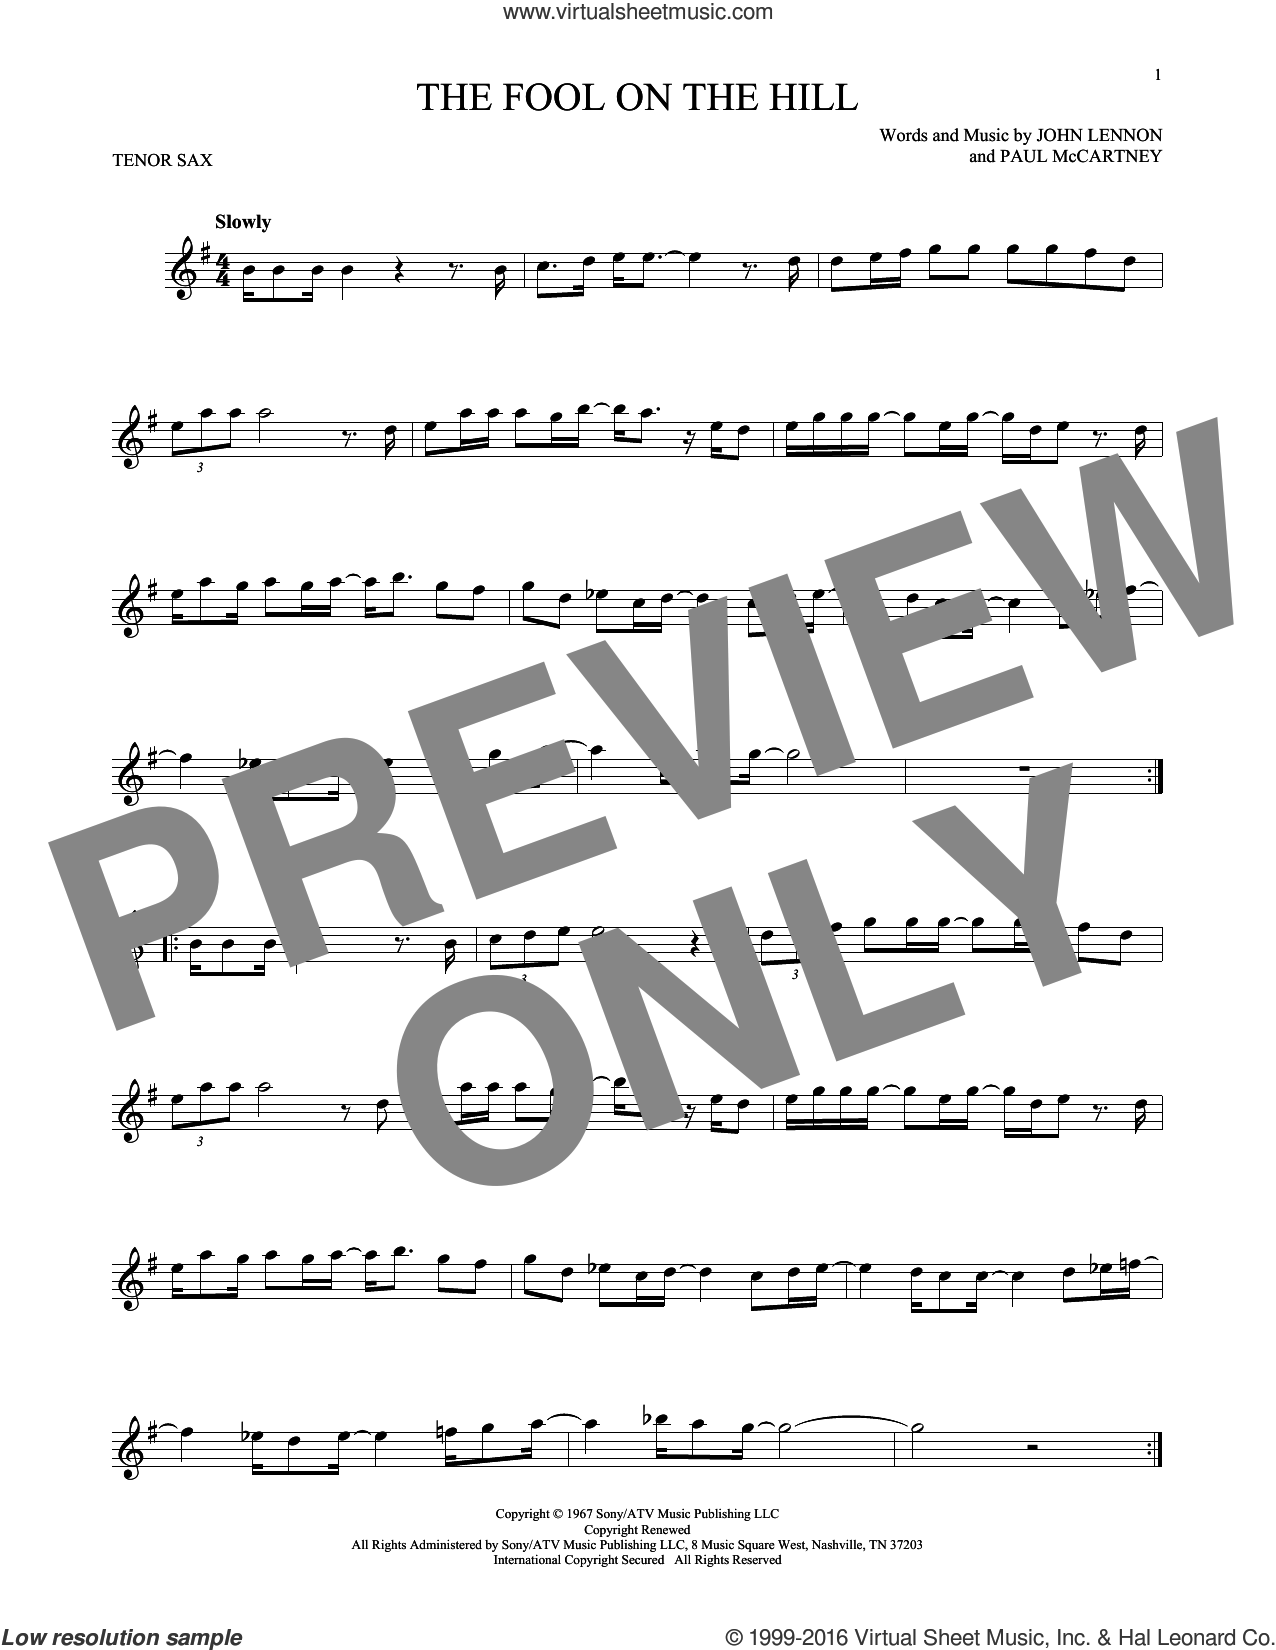 The Fool On The Hill sheet music for tenor saxophone solo by Paul McCartney